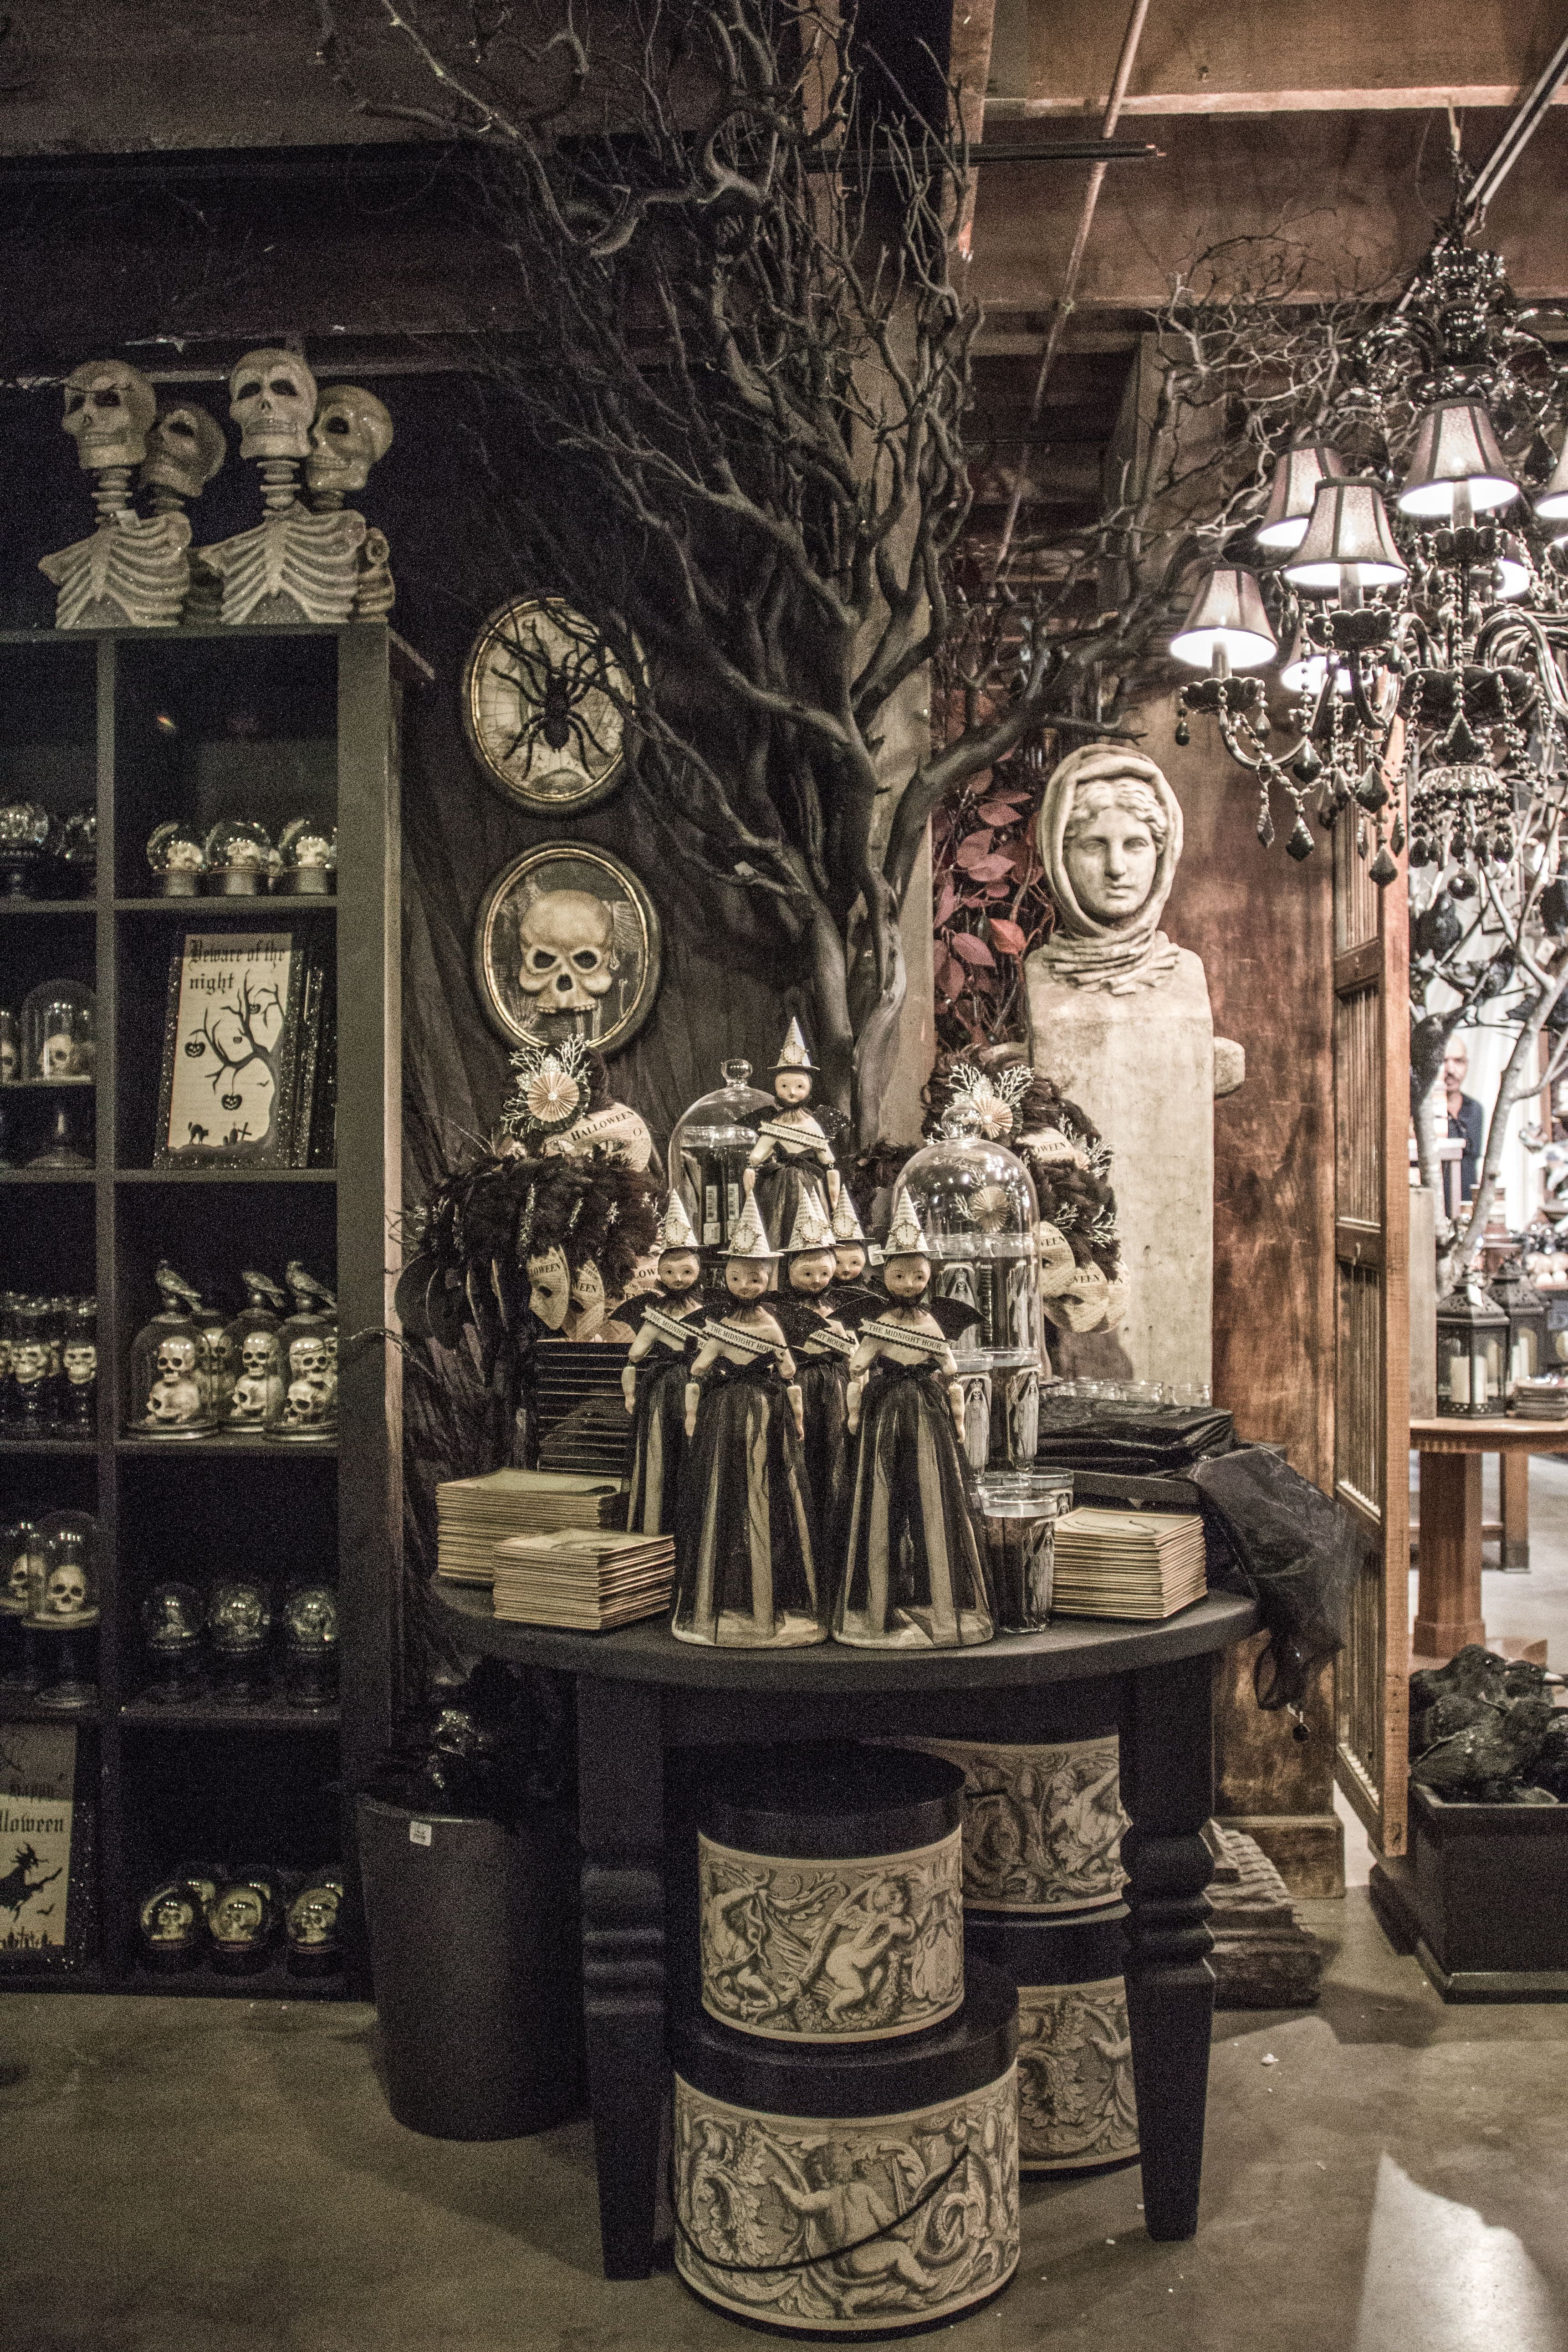 Man Cave Designs also Halloween 9 additionally Best Gaming Setups together with How To Build A Dock furthermore Details Awesome half term activity with friends 133. on awesome game room ideas